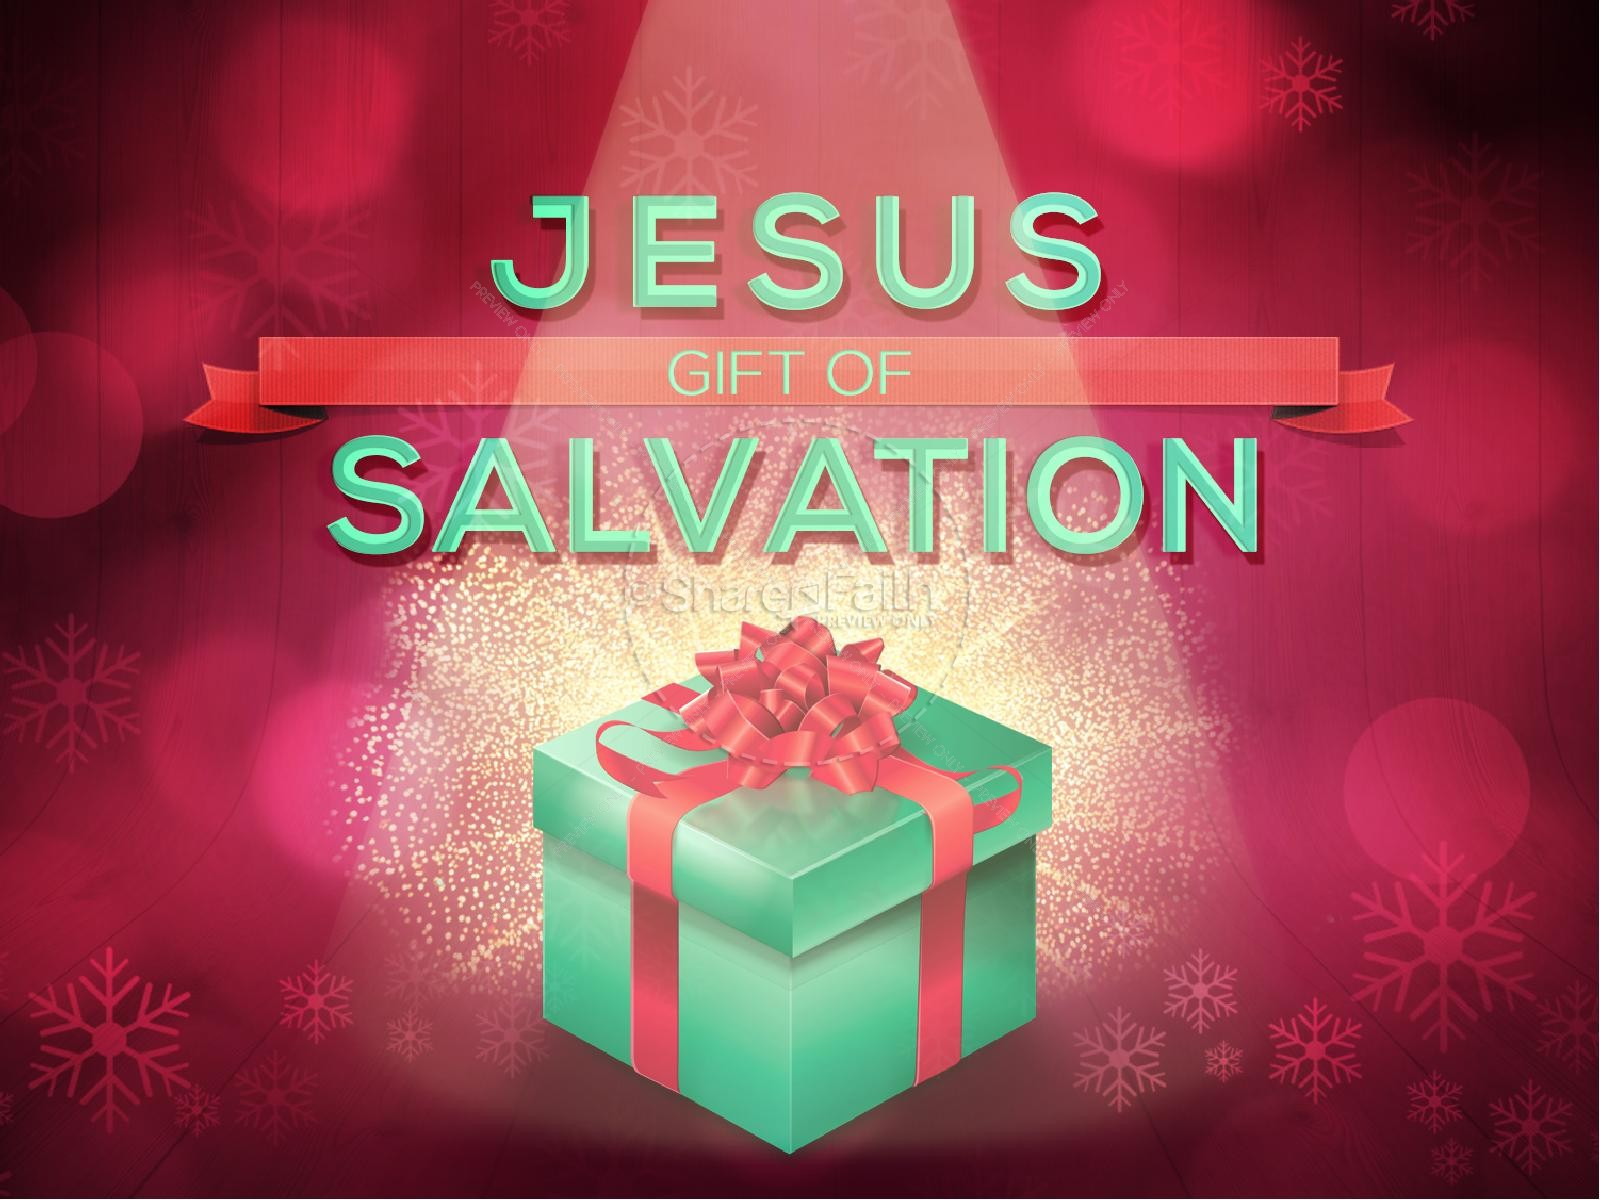 Jesus gift of salvation ministry powerpoint christmas powerpoints jesus gift of salvation ministry powerpoint negle Image collections